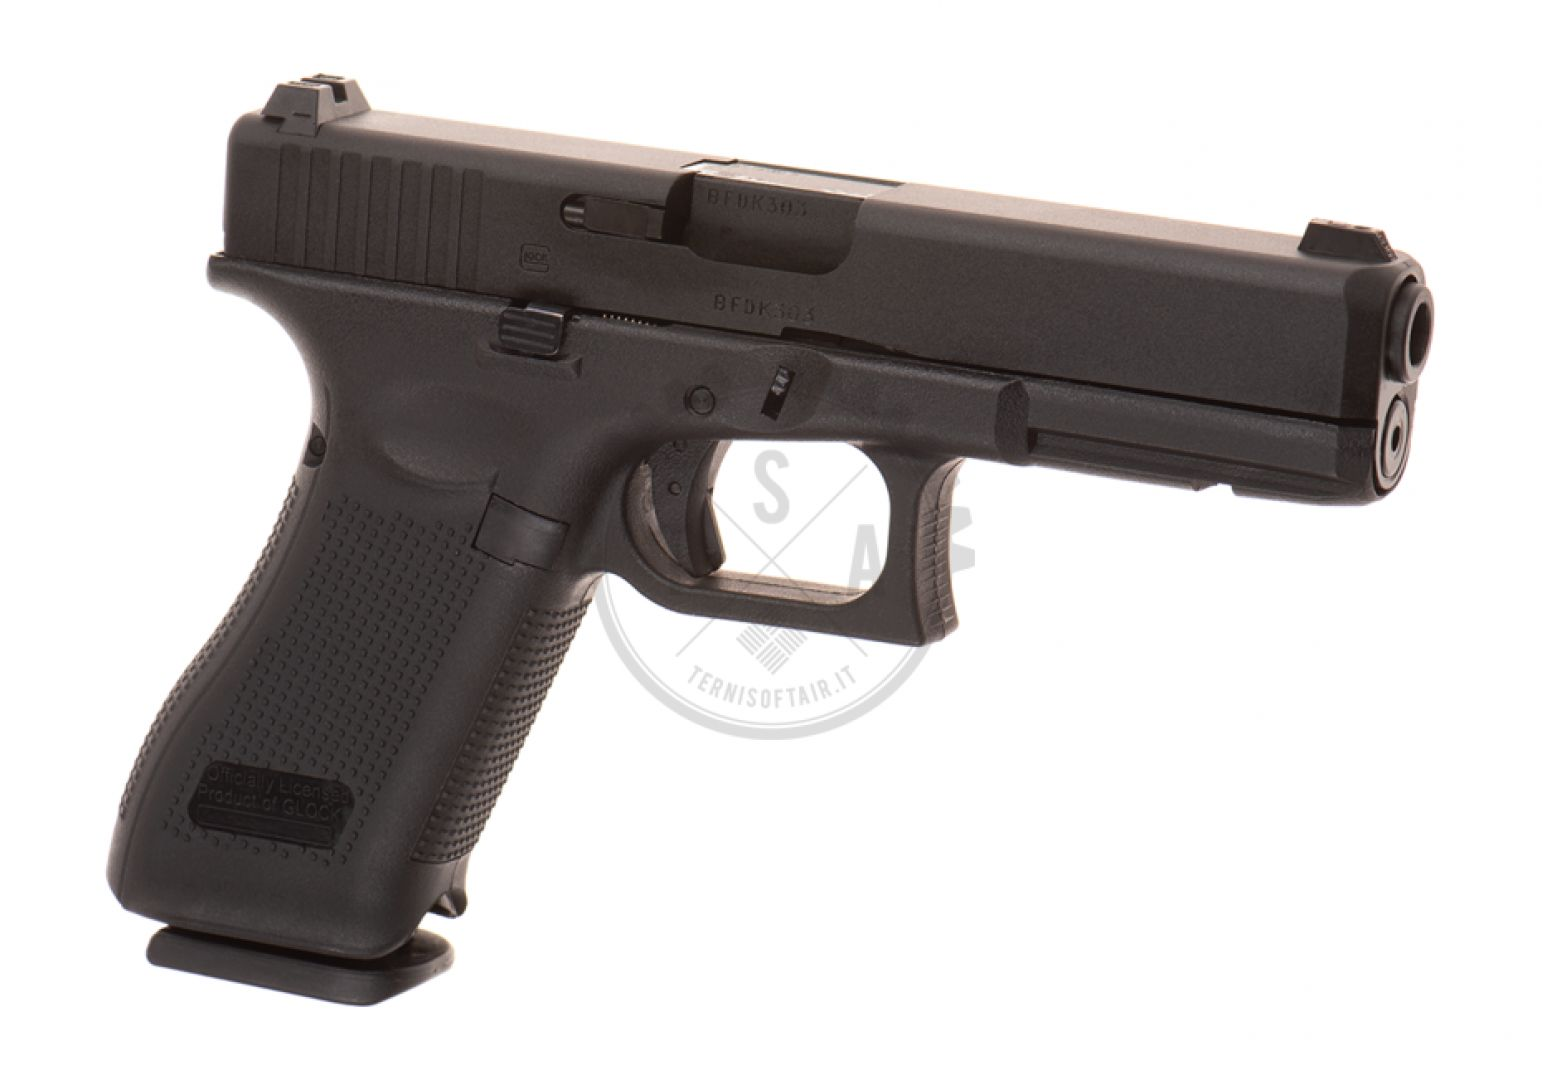 Glock 17 Gen 5 Metal Version GBB